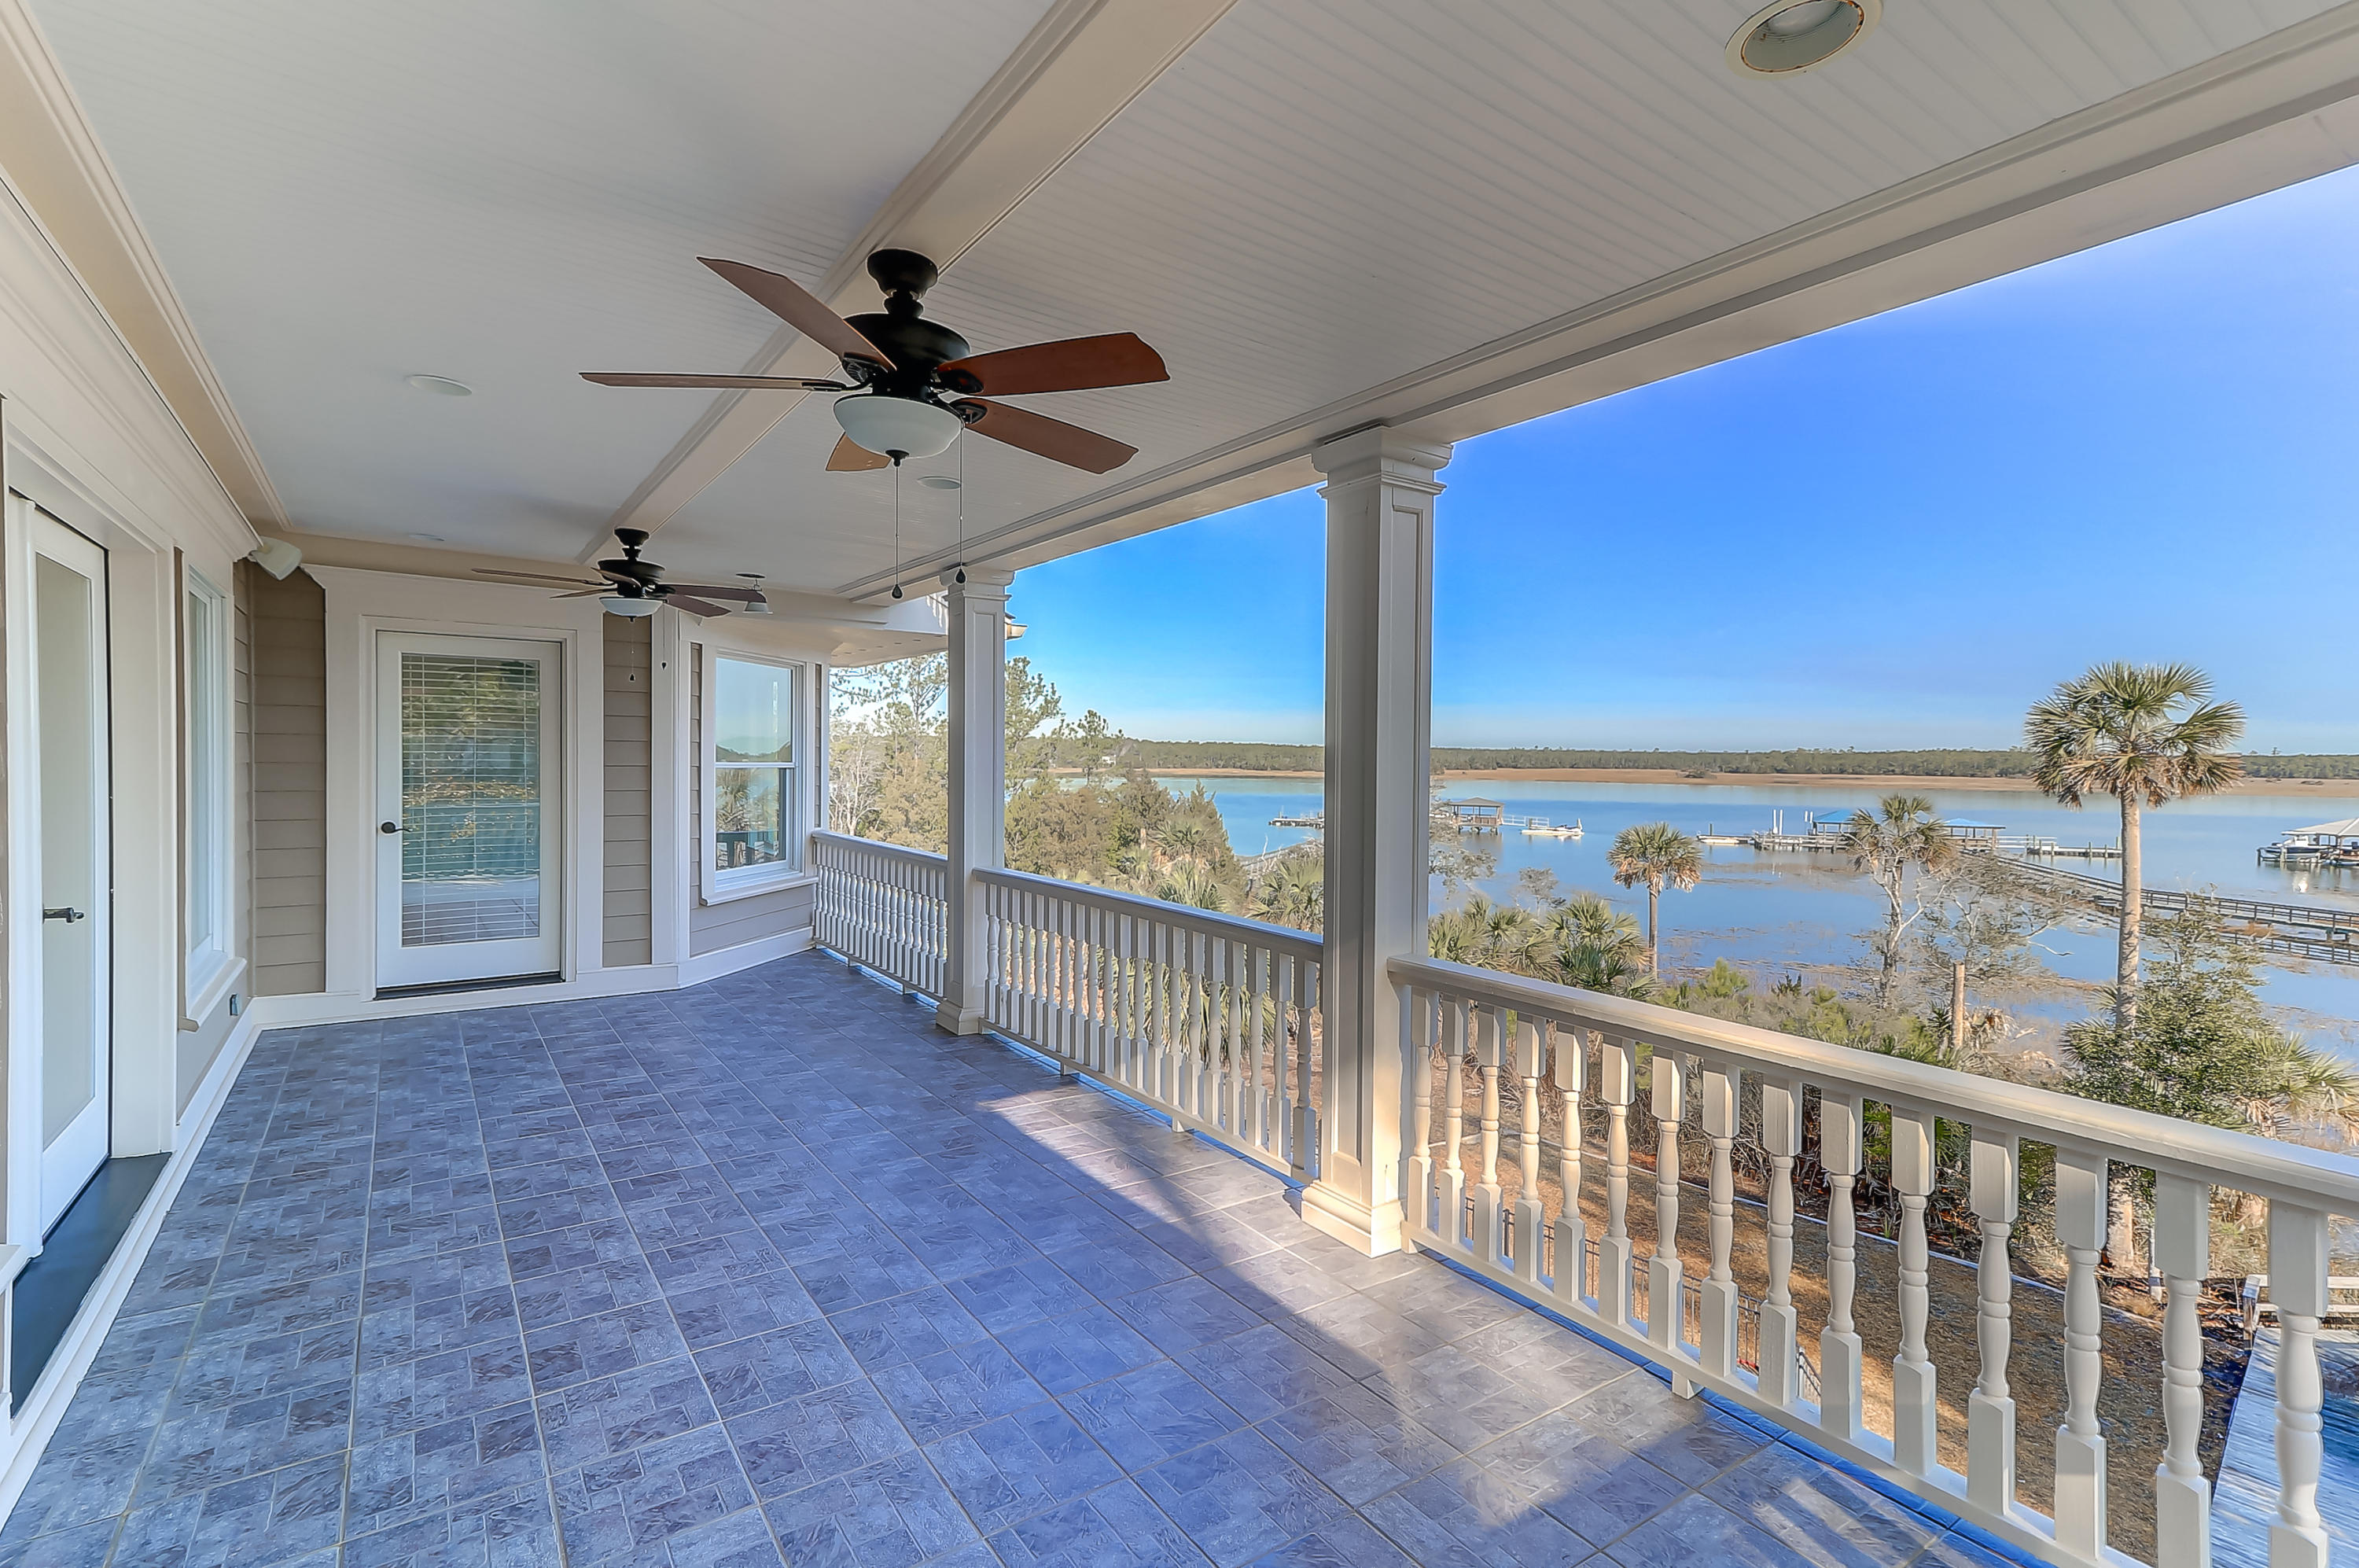 Dunes West Homes For Sale - 2852 River Vista, Mount Pleasant, SC - 43